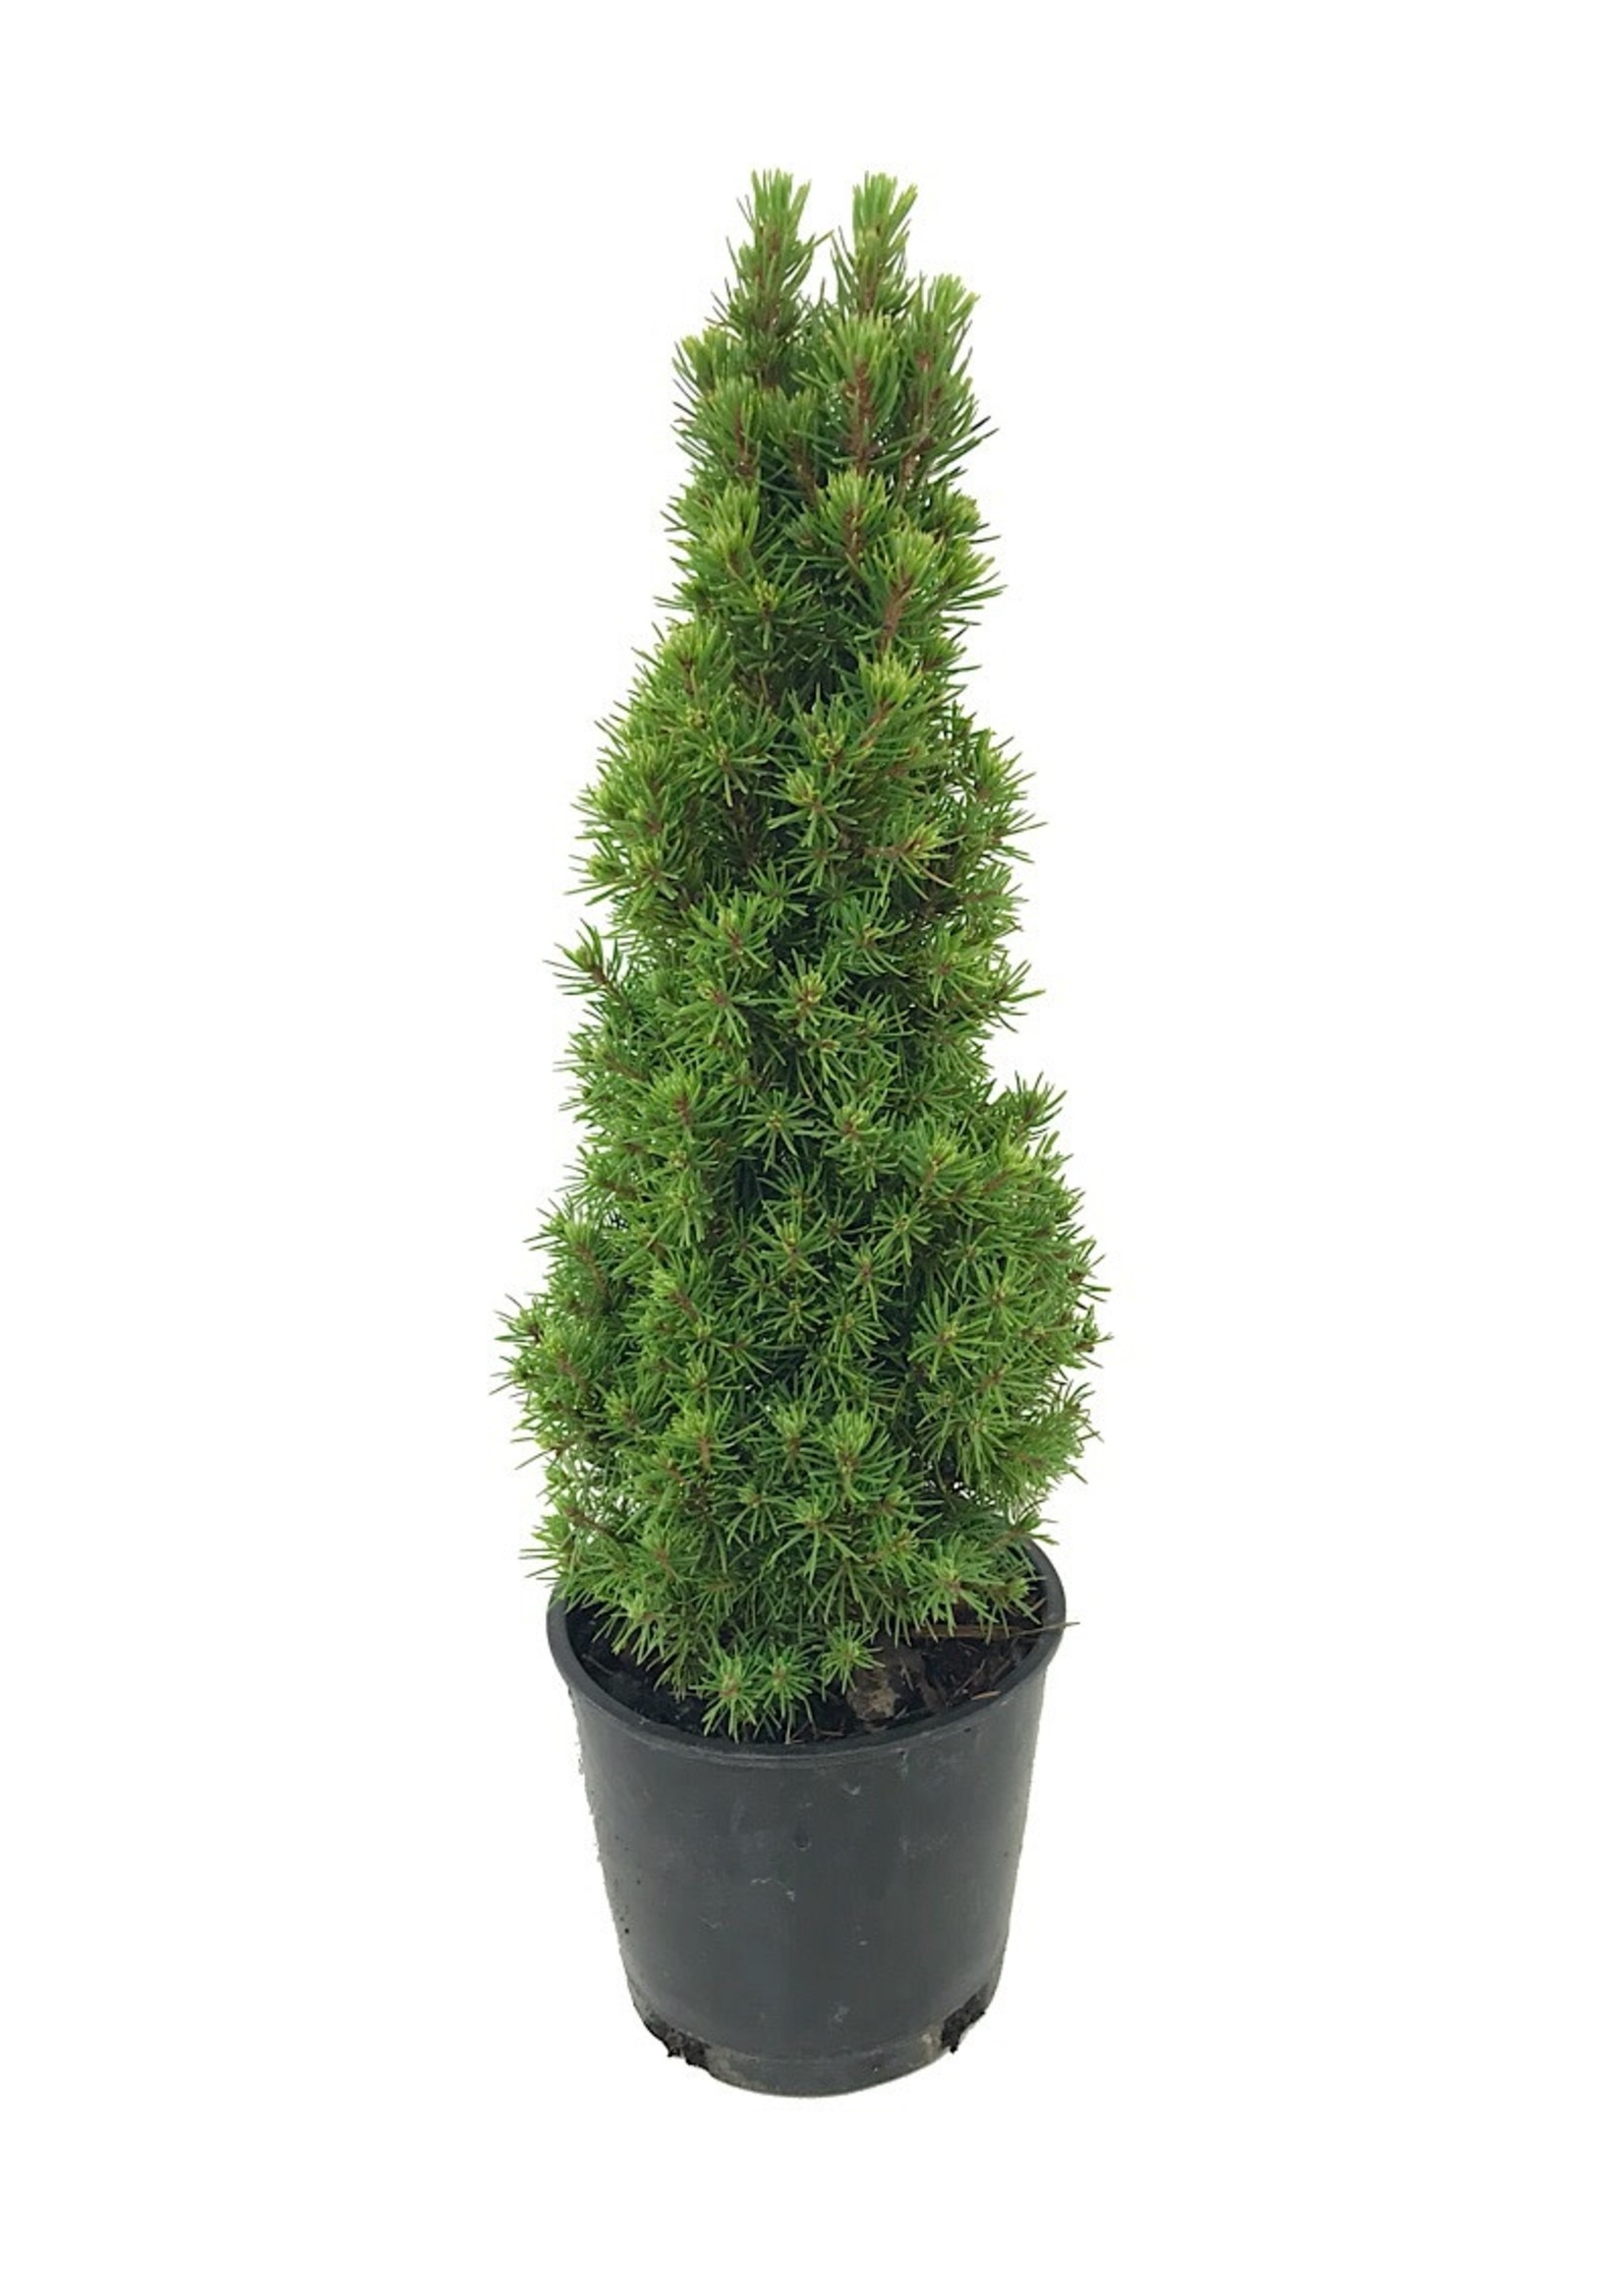 Picea glauca 'Jean's Dilly'